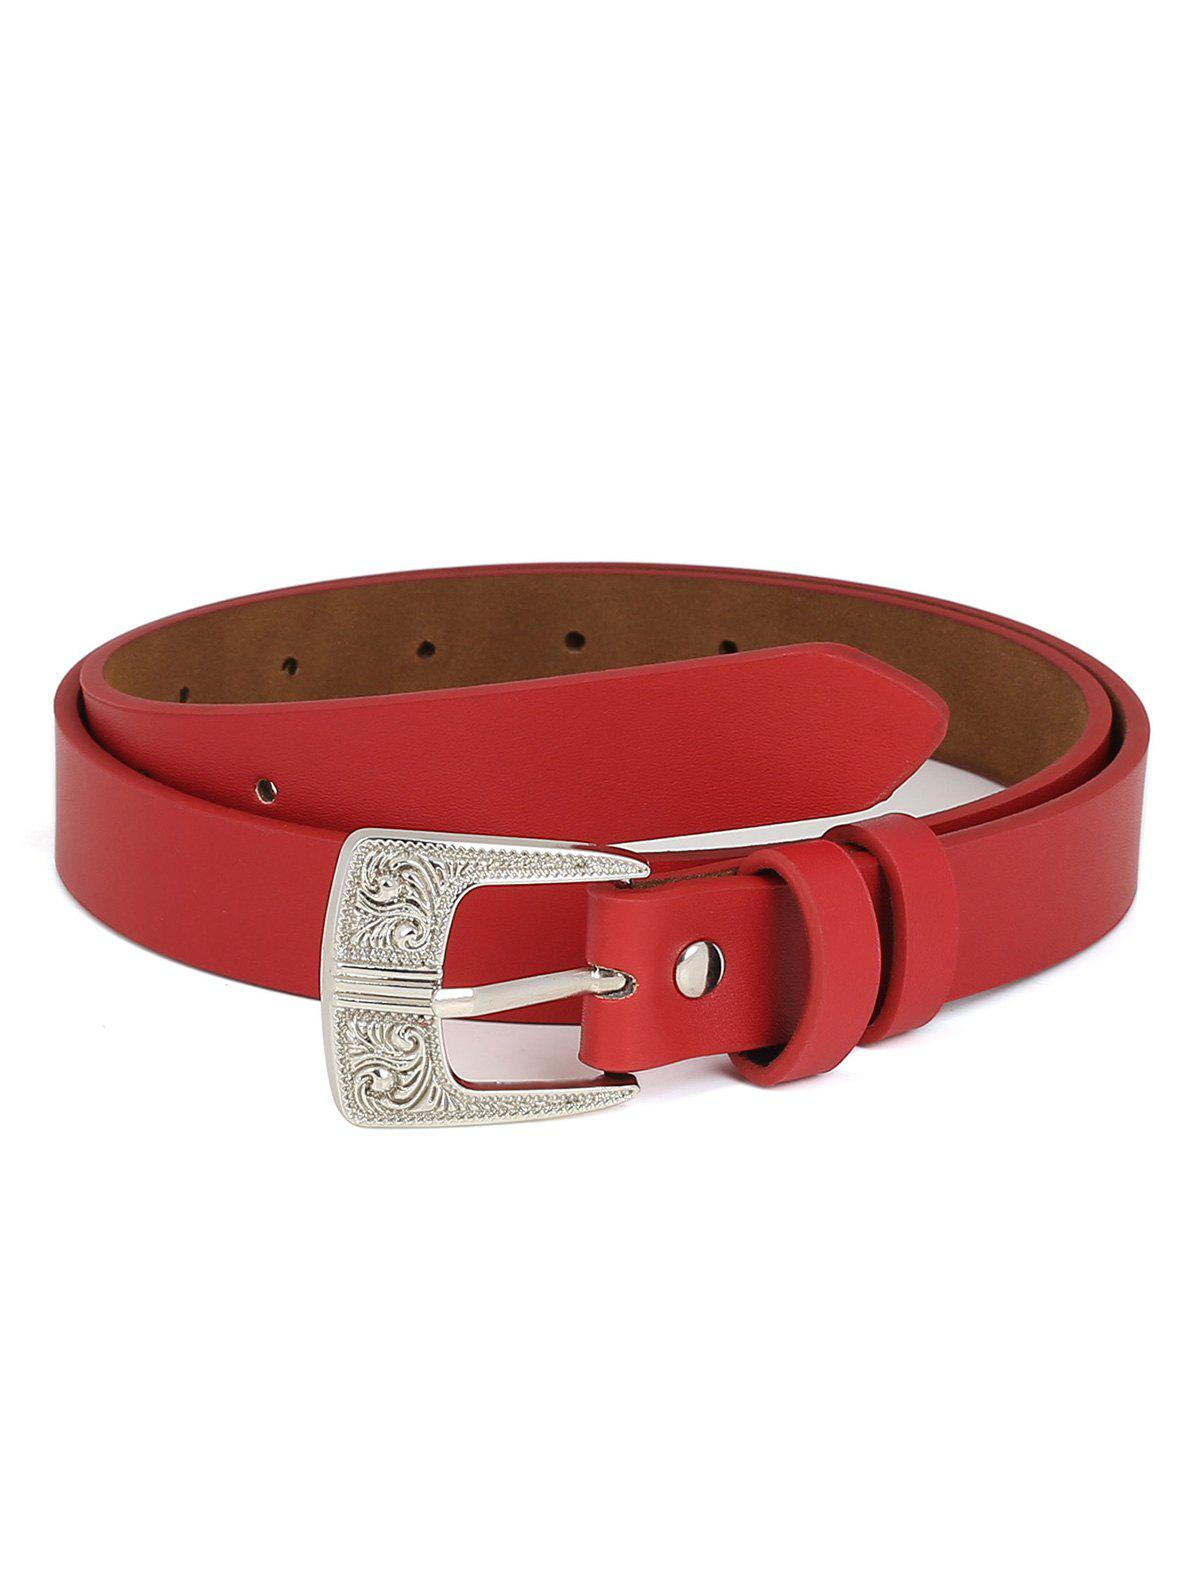 Online PU Leather Carving Pin Buckle Waist Belt